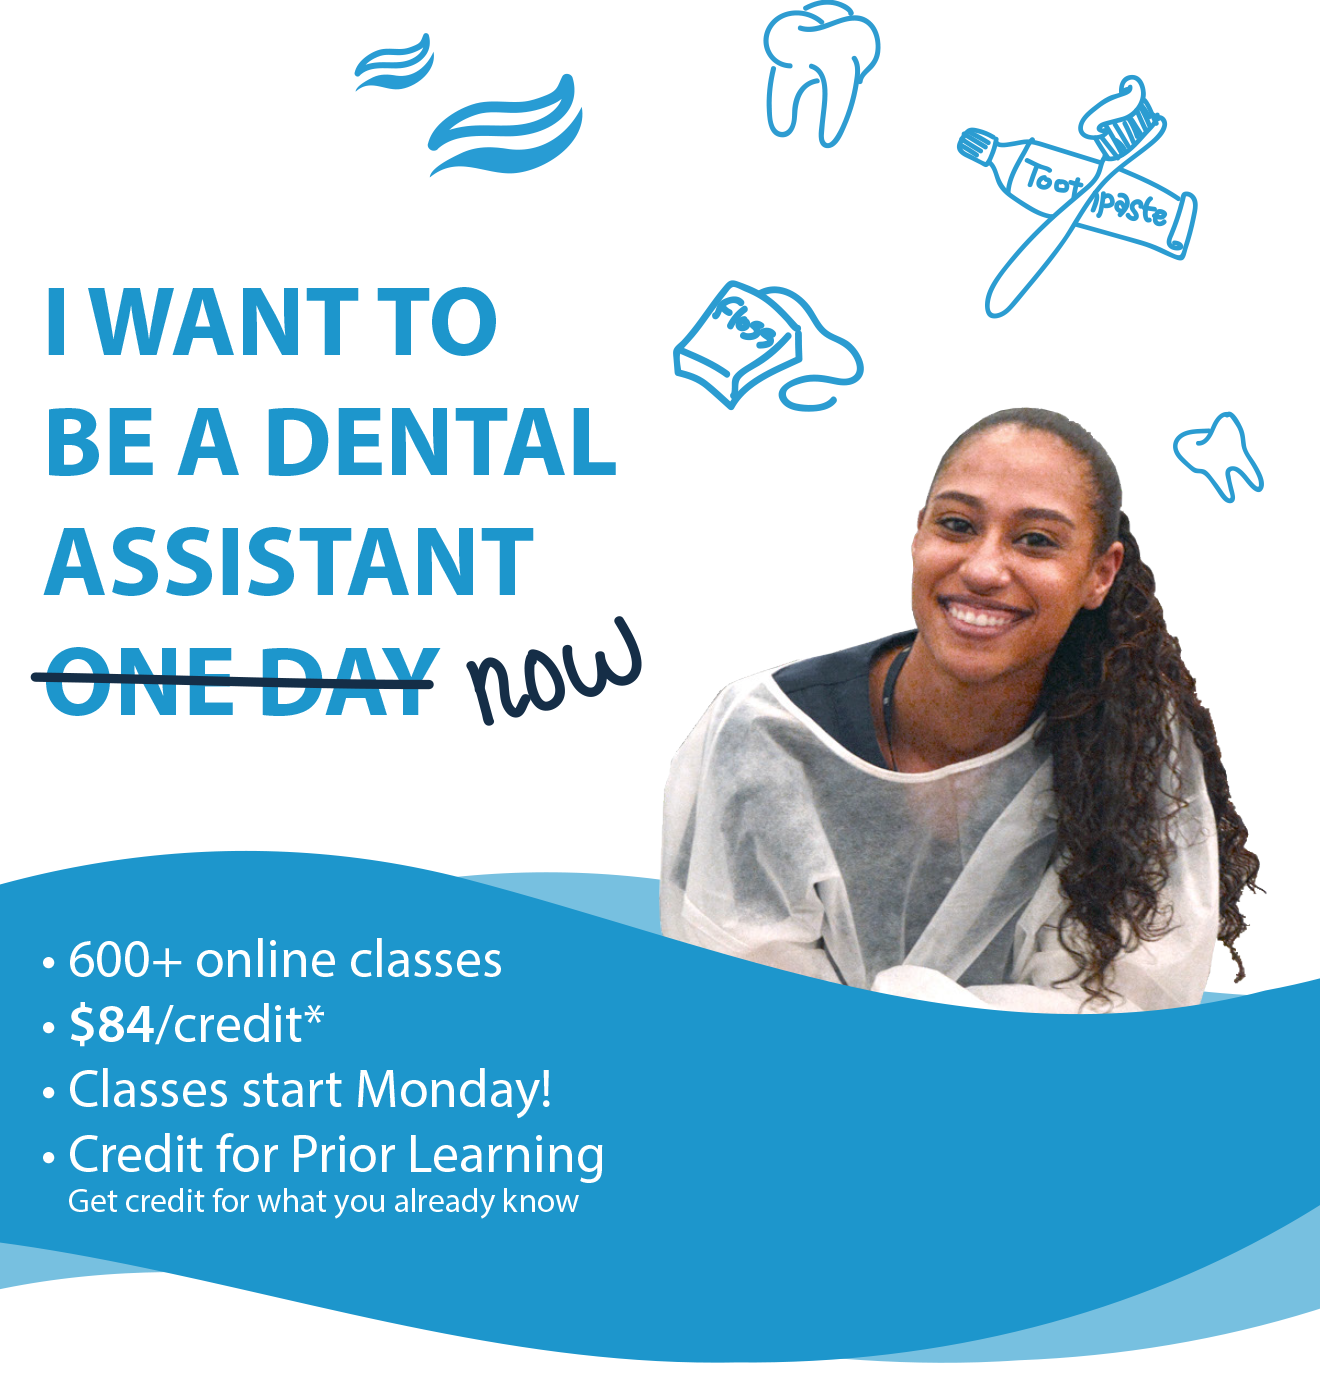 "Image of student.  Capition: I want to be a dental assistant now (""one day"" is crossed out).  600+ onlne classes, $84 a credit.  Classes start Monday.  Credit for prior learning (get credit for what you already know)."